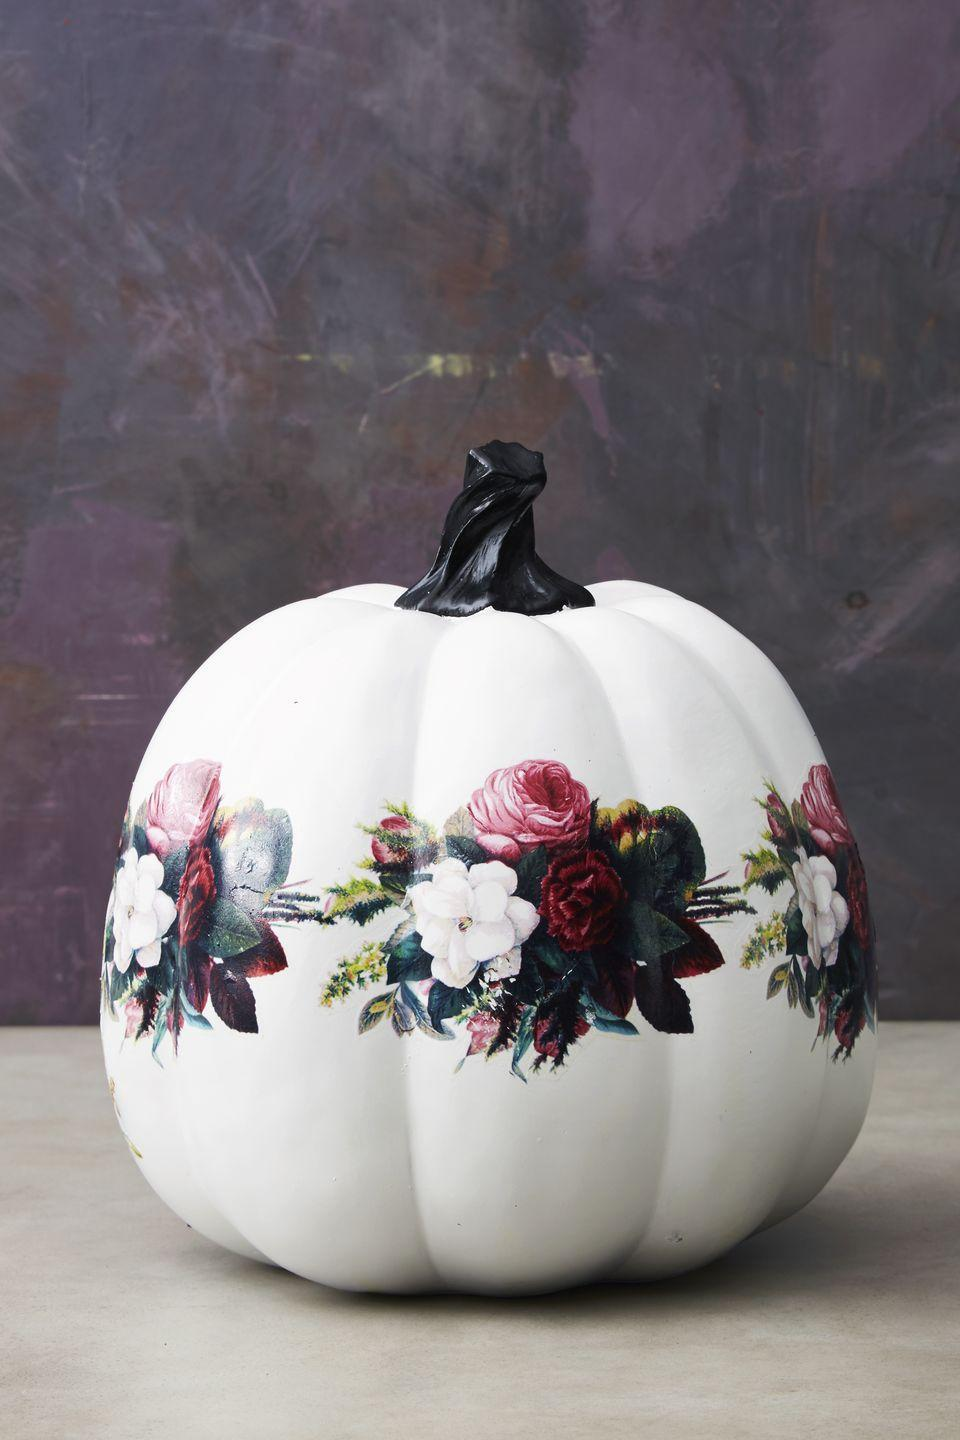 """<p>Adhere temporary tattoos to your white pumpkin, as you would on skin. Join a ring of floral selects together for this botanical look.</p><p><a class=""""link rapid-noclick-resp"""" href=""""https://go.redirectingat.com?id=74968X1596630&url=https%3A%2F%2Fwww.etsy.com%2Flisting%2F505906520%2Ftemporary-tattoo-purple-flower-purple&sref=https%3A%2F%2Fwww.goodhousekeeping.com%2Fholidays%2Fhalloween-ideas%2Fg1714%2Fno-carve-pumpkin-decorating%2F"""" rel=""""nofollow noopener"""" target=""""_blank"""" data-ylk=""""slk:SHOP TATTOOS"""">SHOP TATTOOS</a><br></p>"""